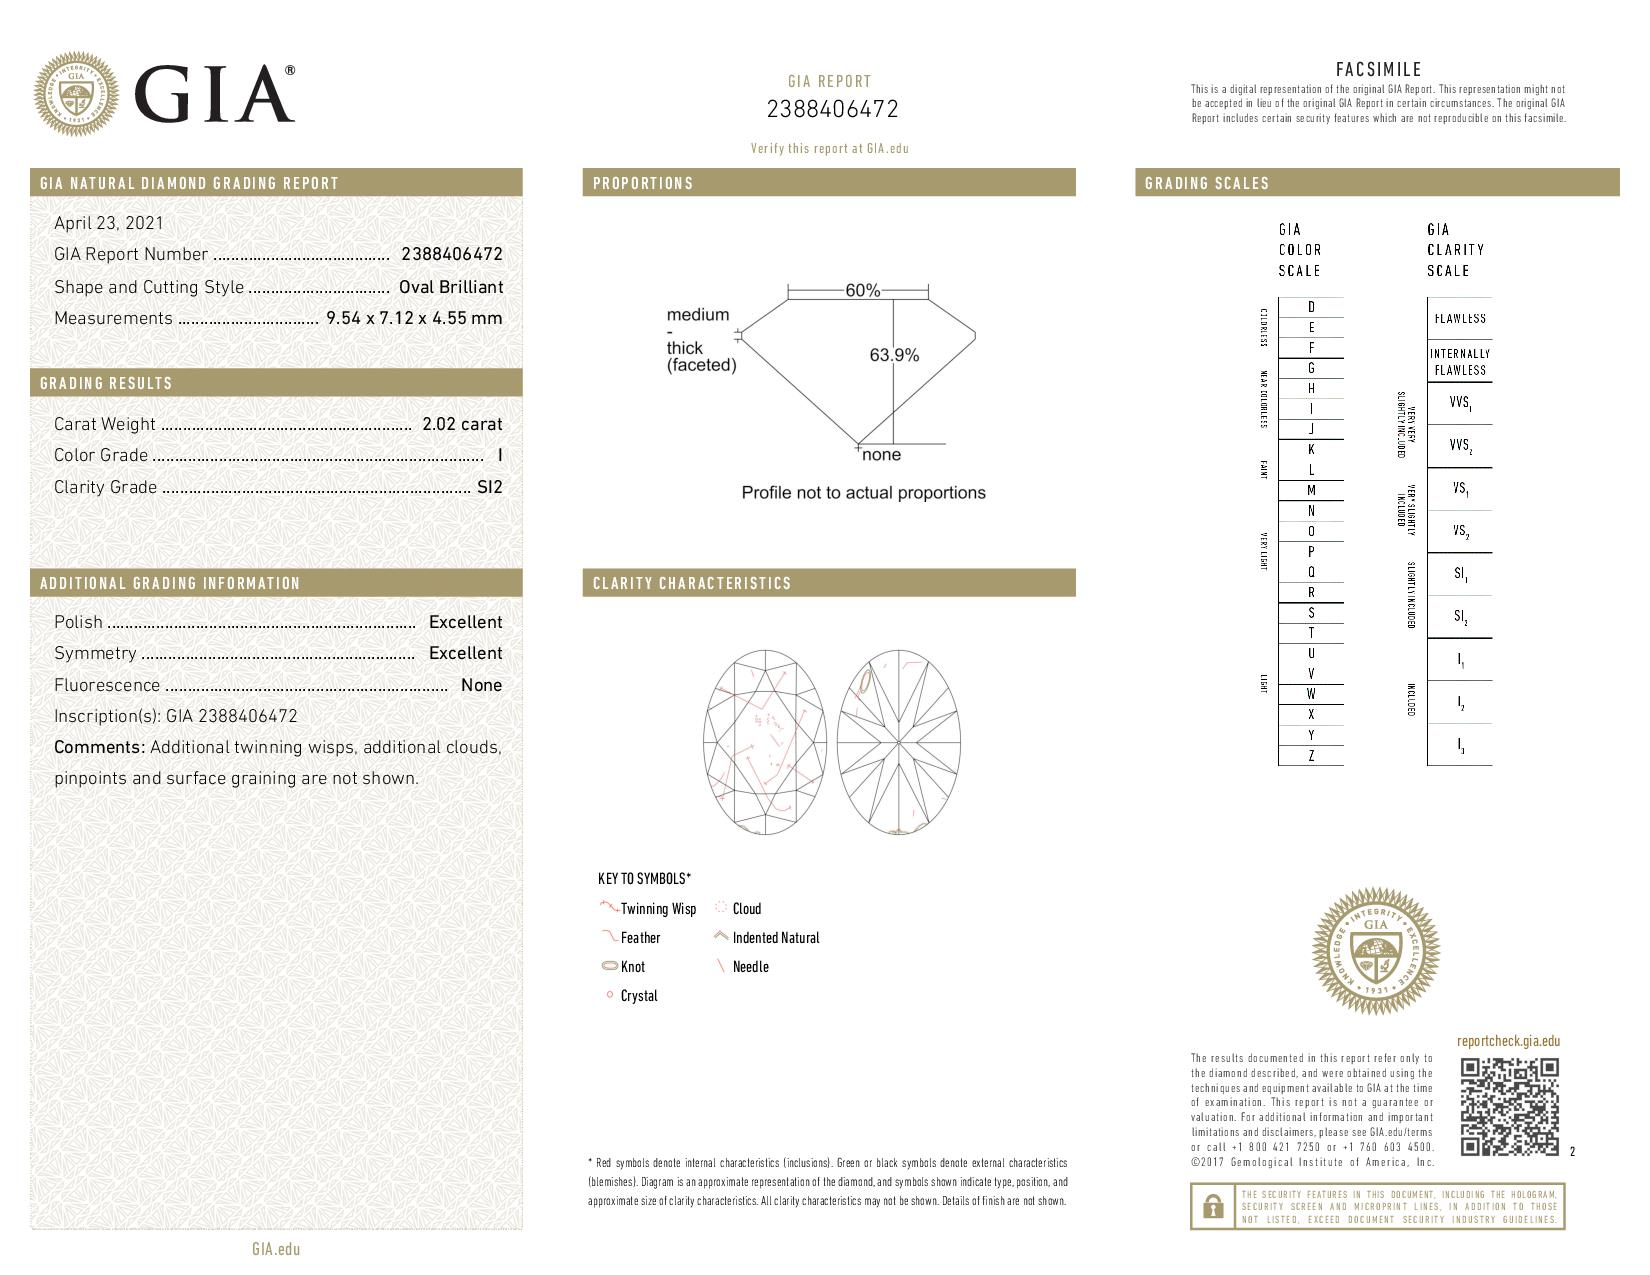 This is a 2.02 carat oval shape, I color, SI2 clarity natural diamond accompanied by a GIA grading report.